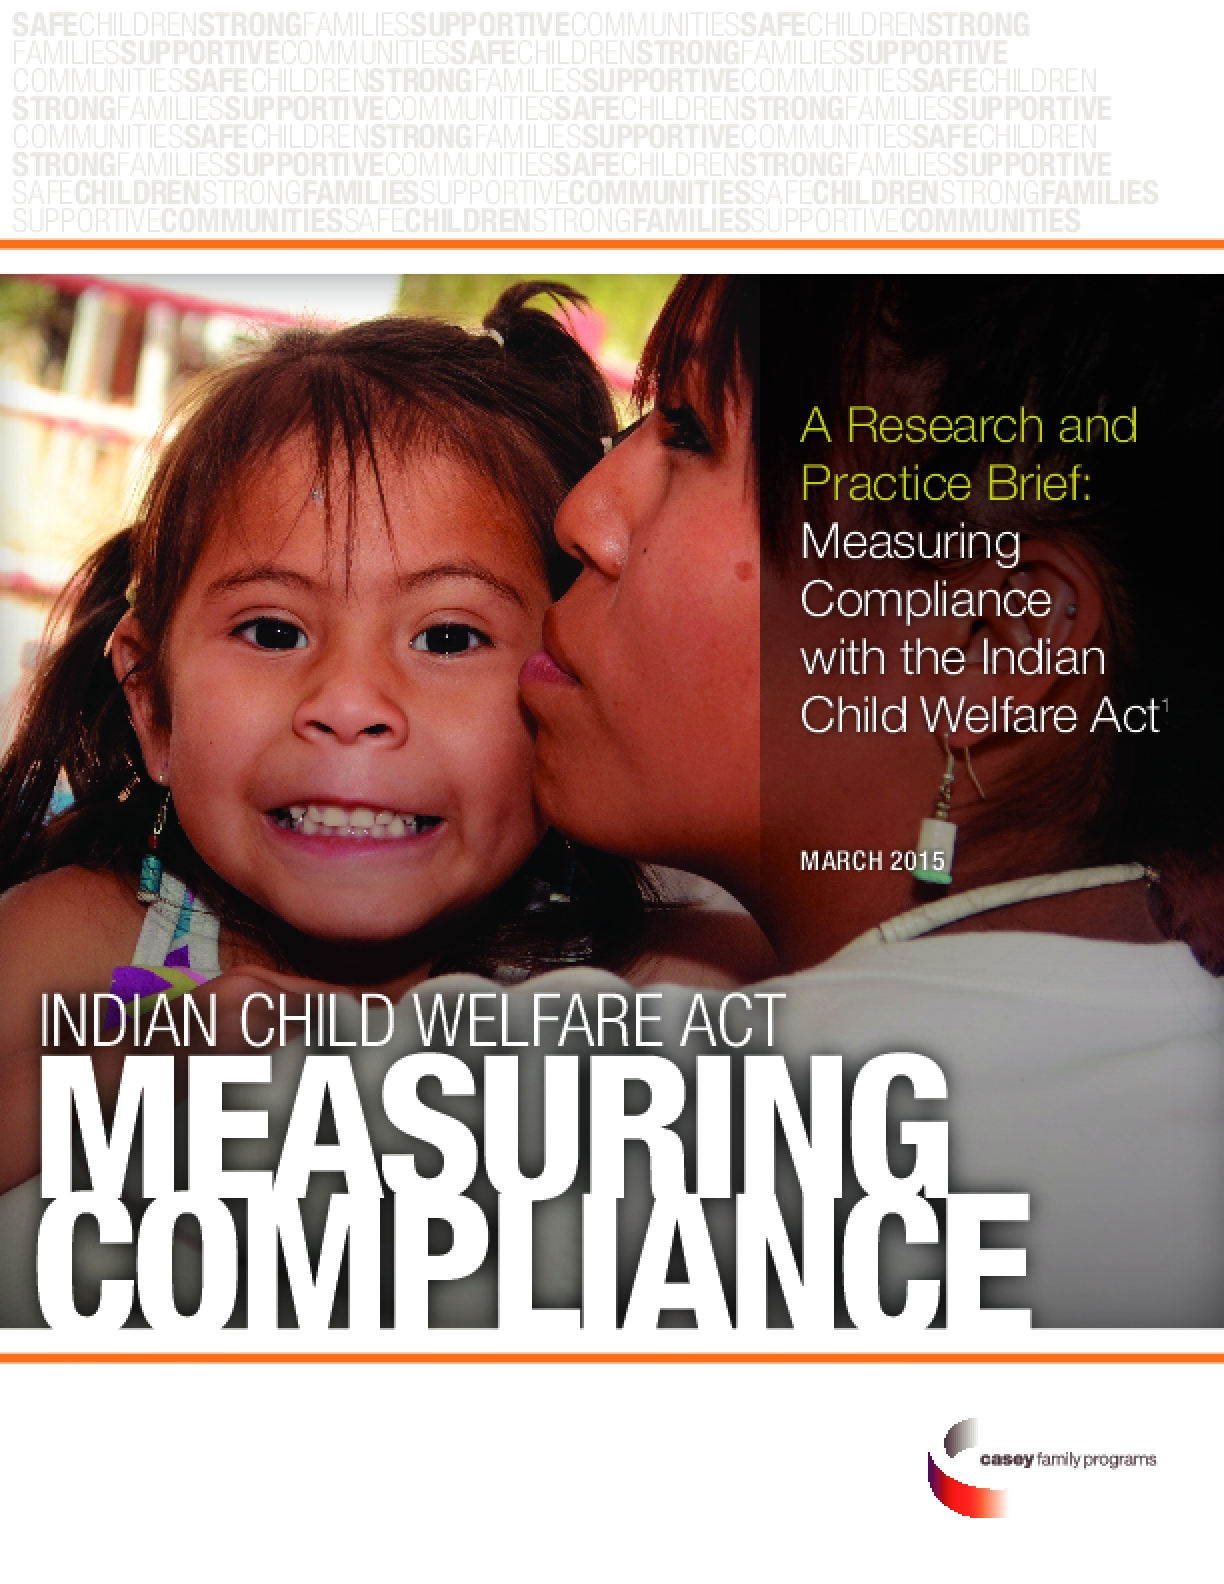 A Research and Practice Brief: Measuring Compliance with the Indian Child Welfare Act